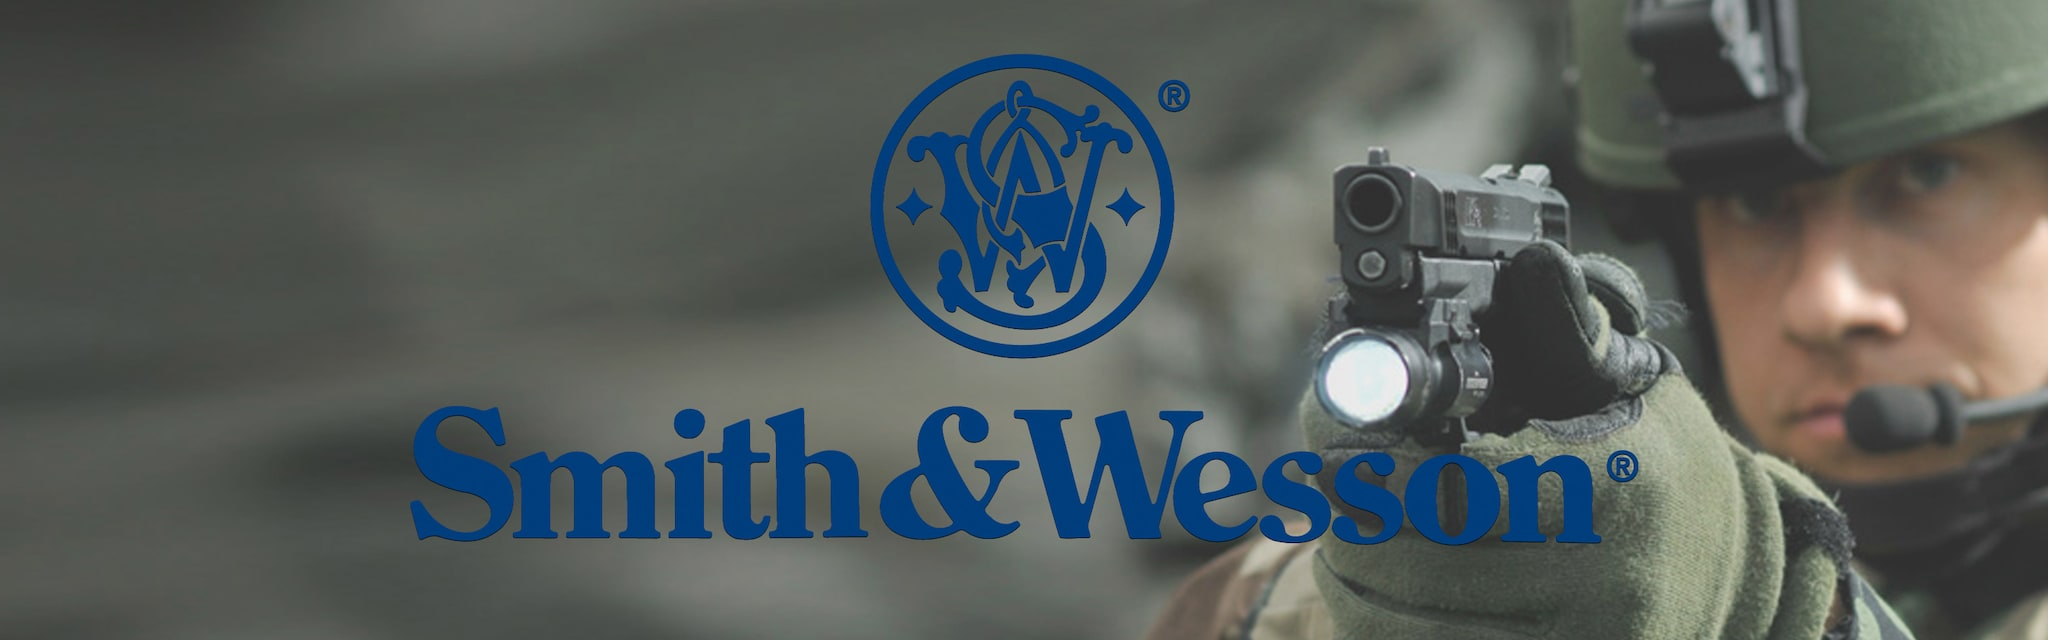 smith and wesson brand banner man aiming handgun with light